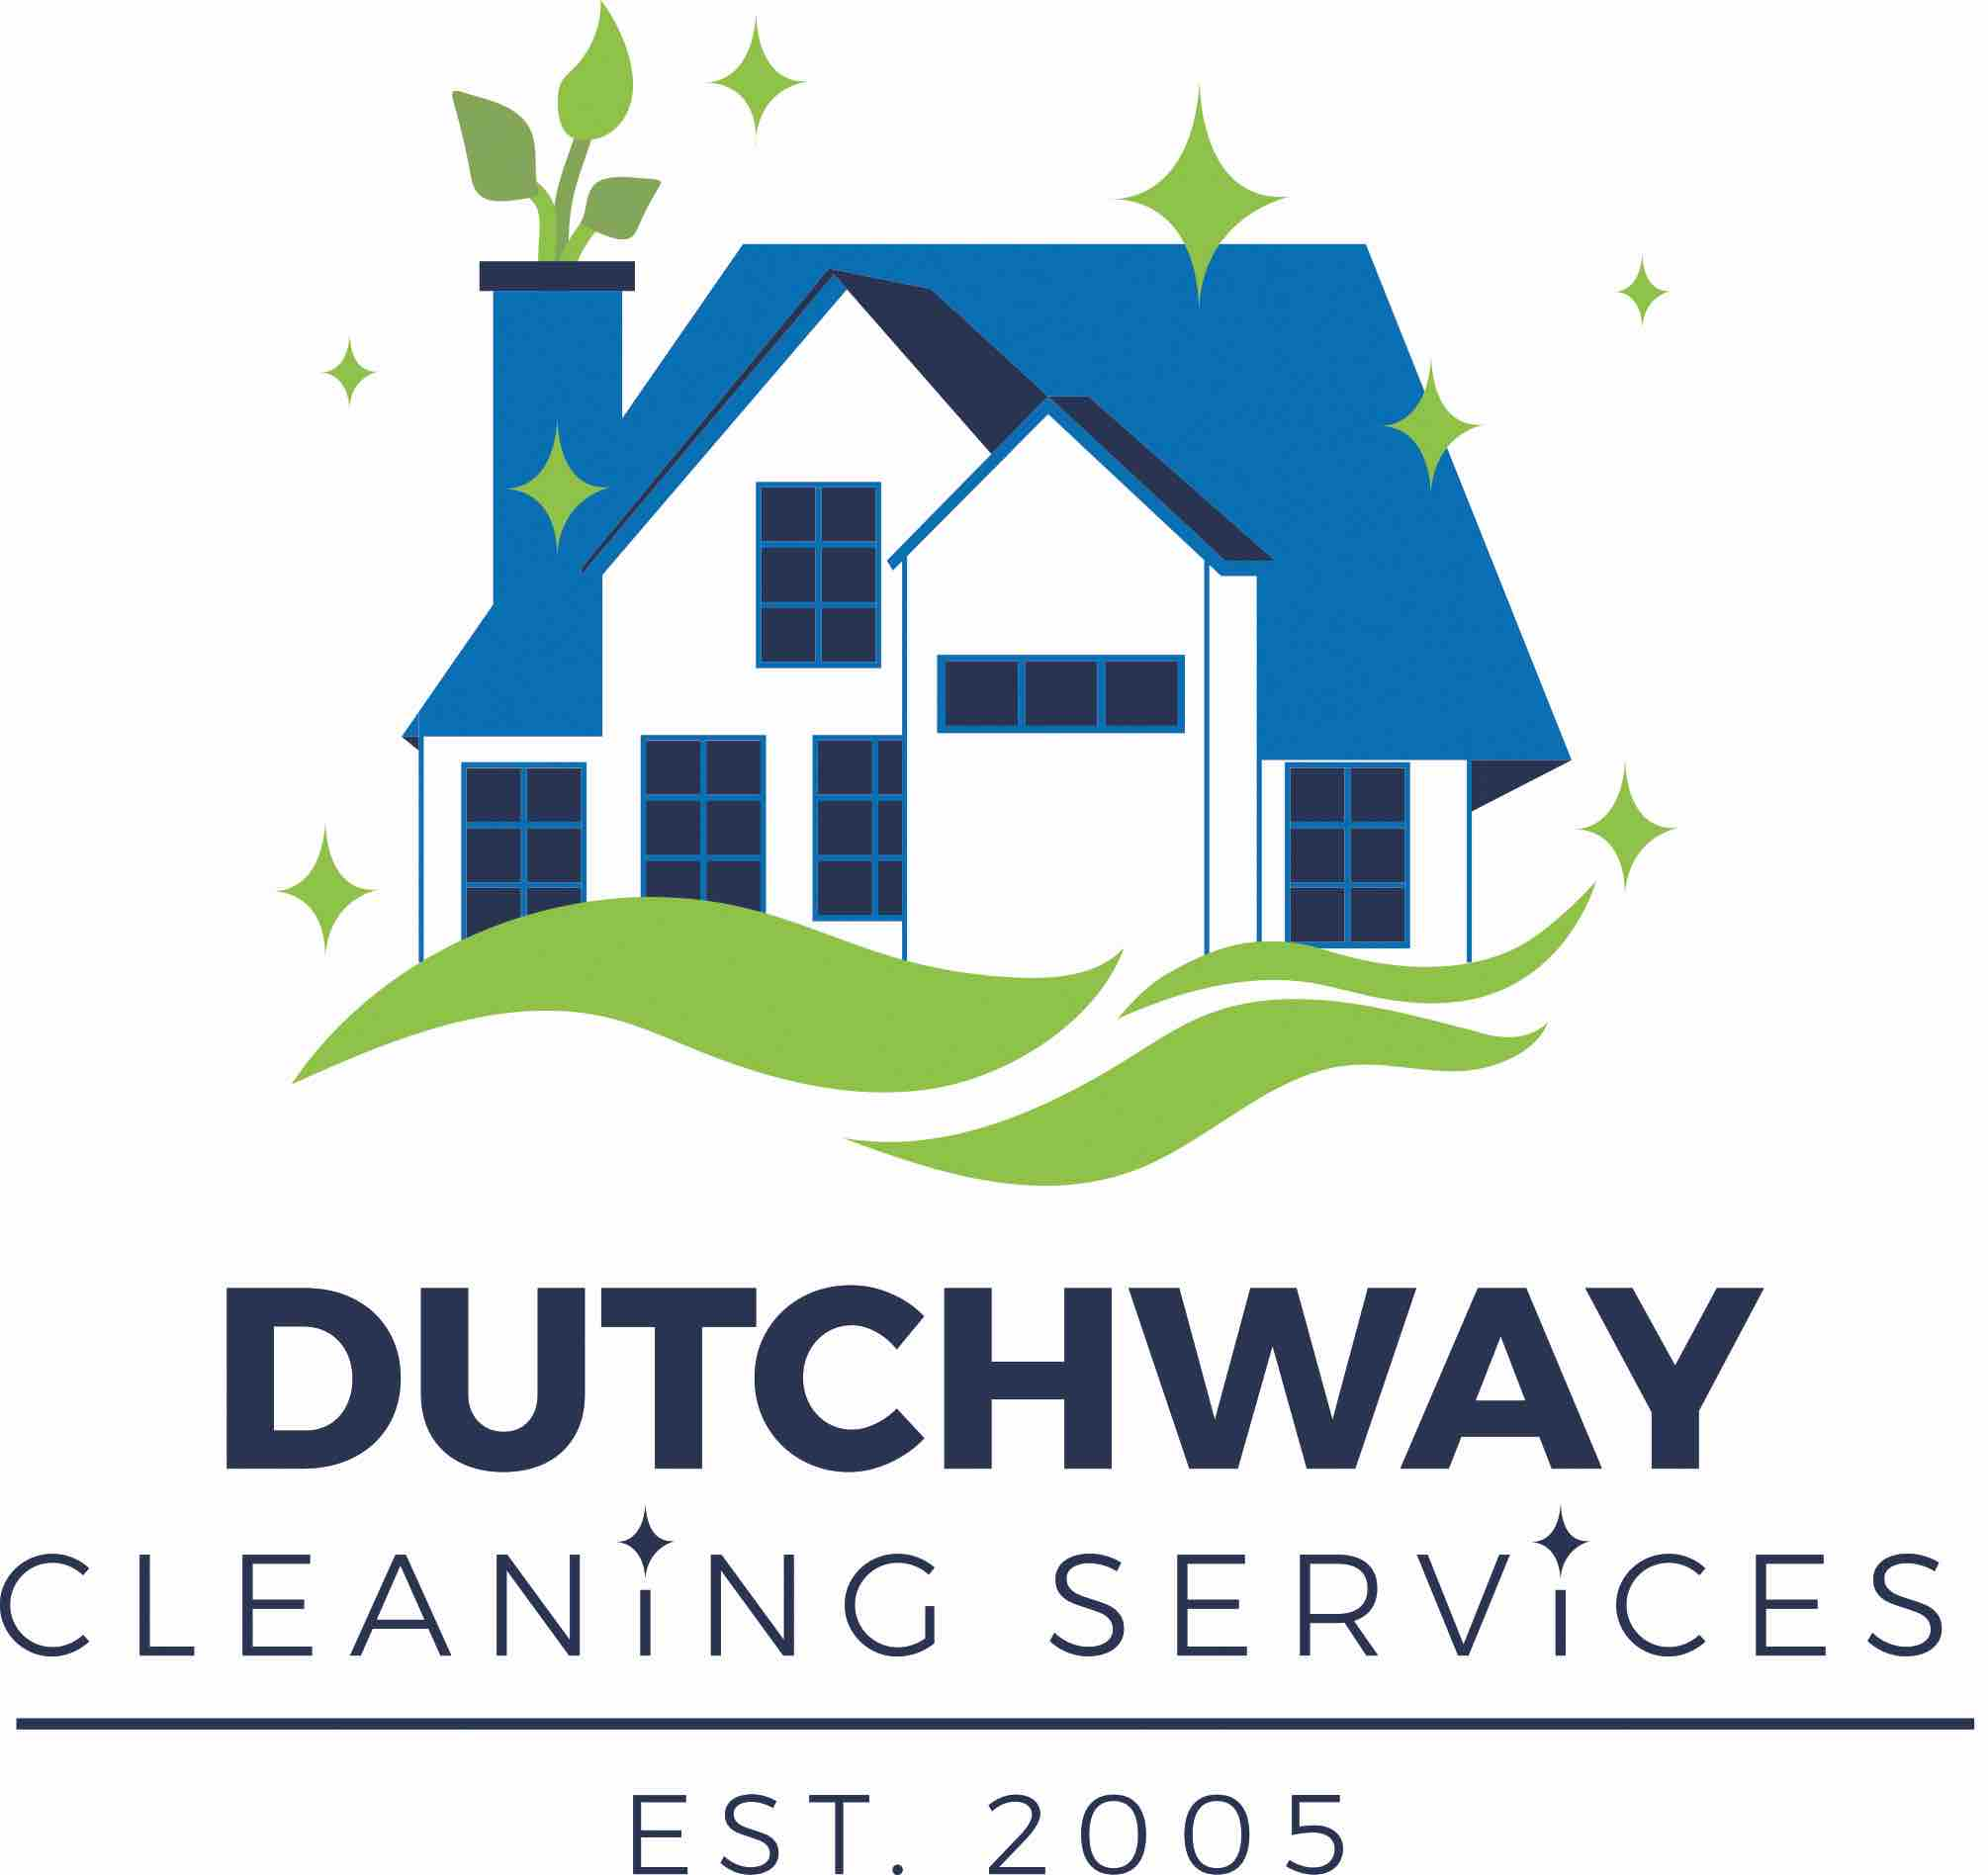 Dutch Way Cleaning Services